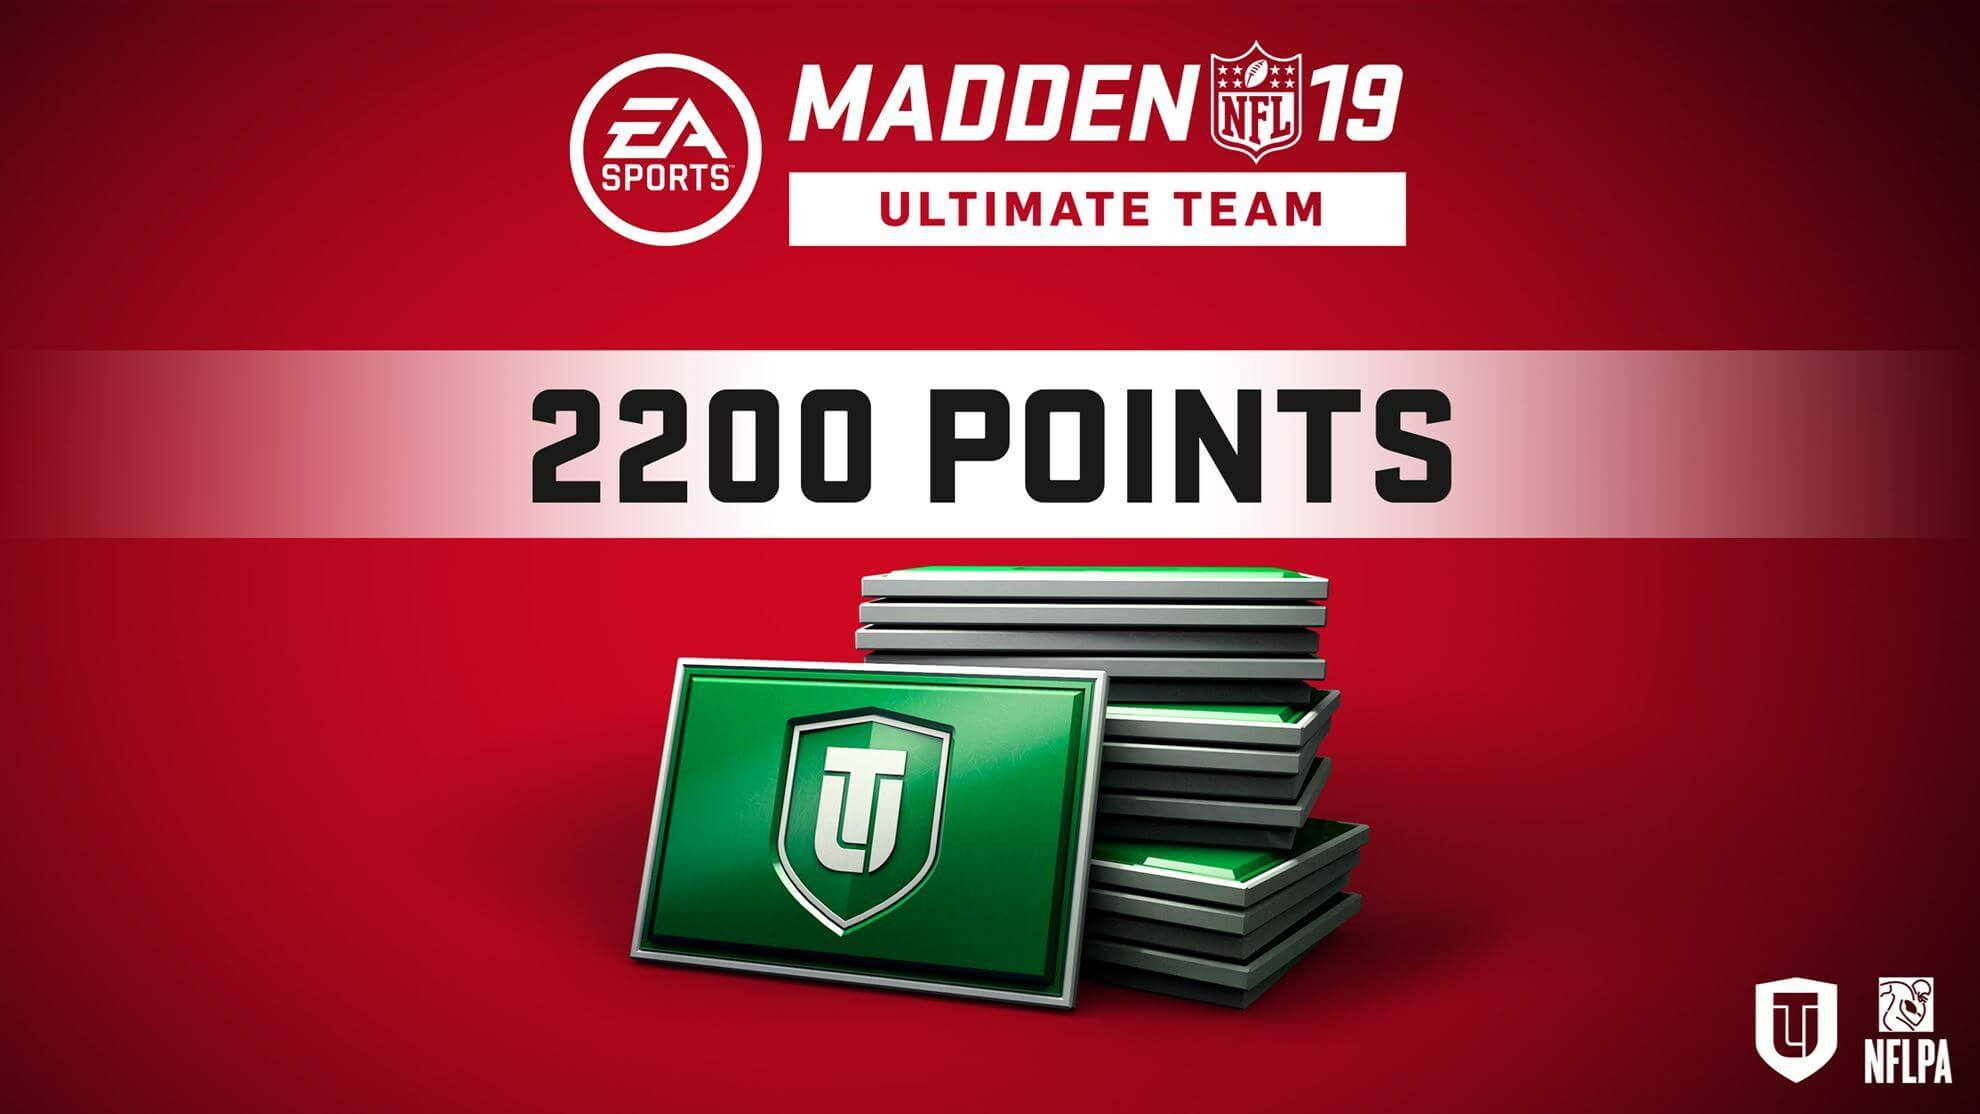 Madden NFL 19 Ultimate Team 2200 Points Pack